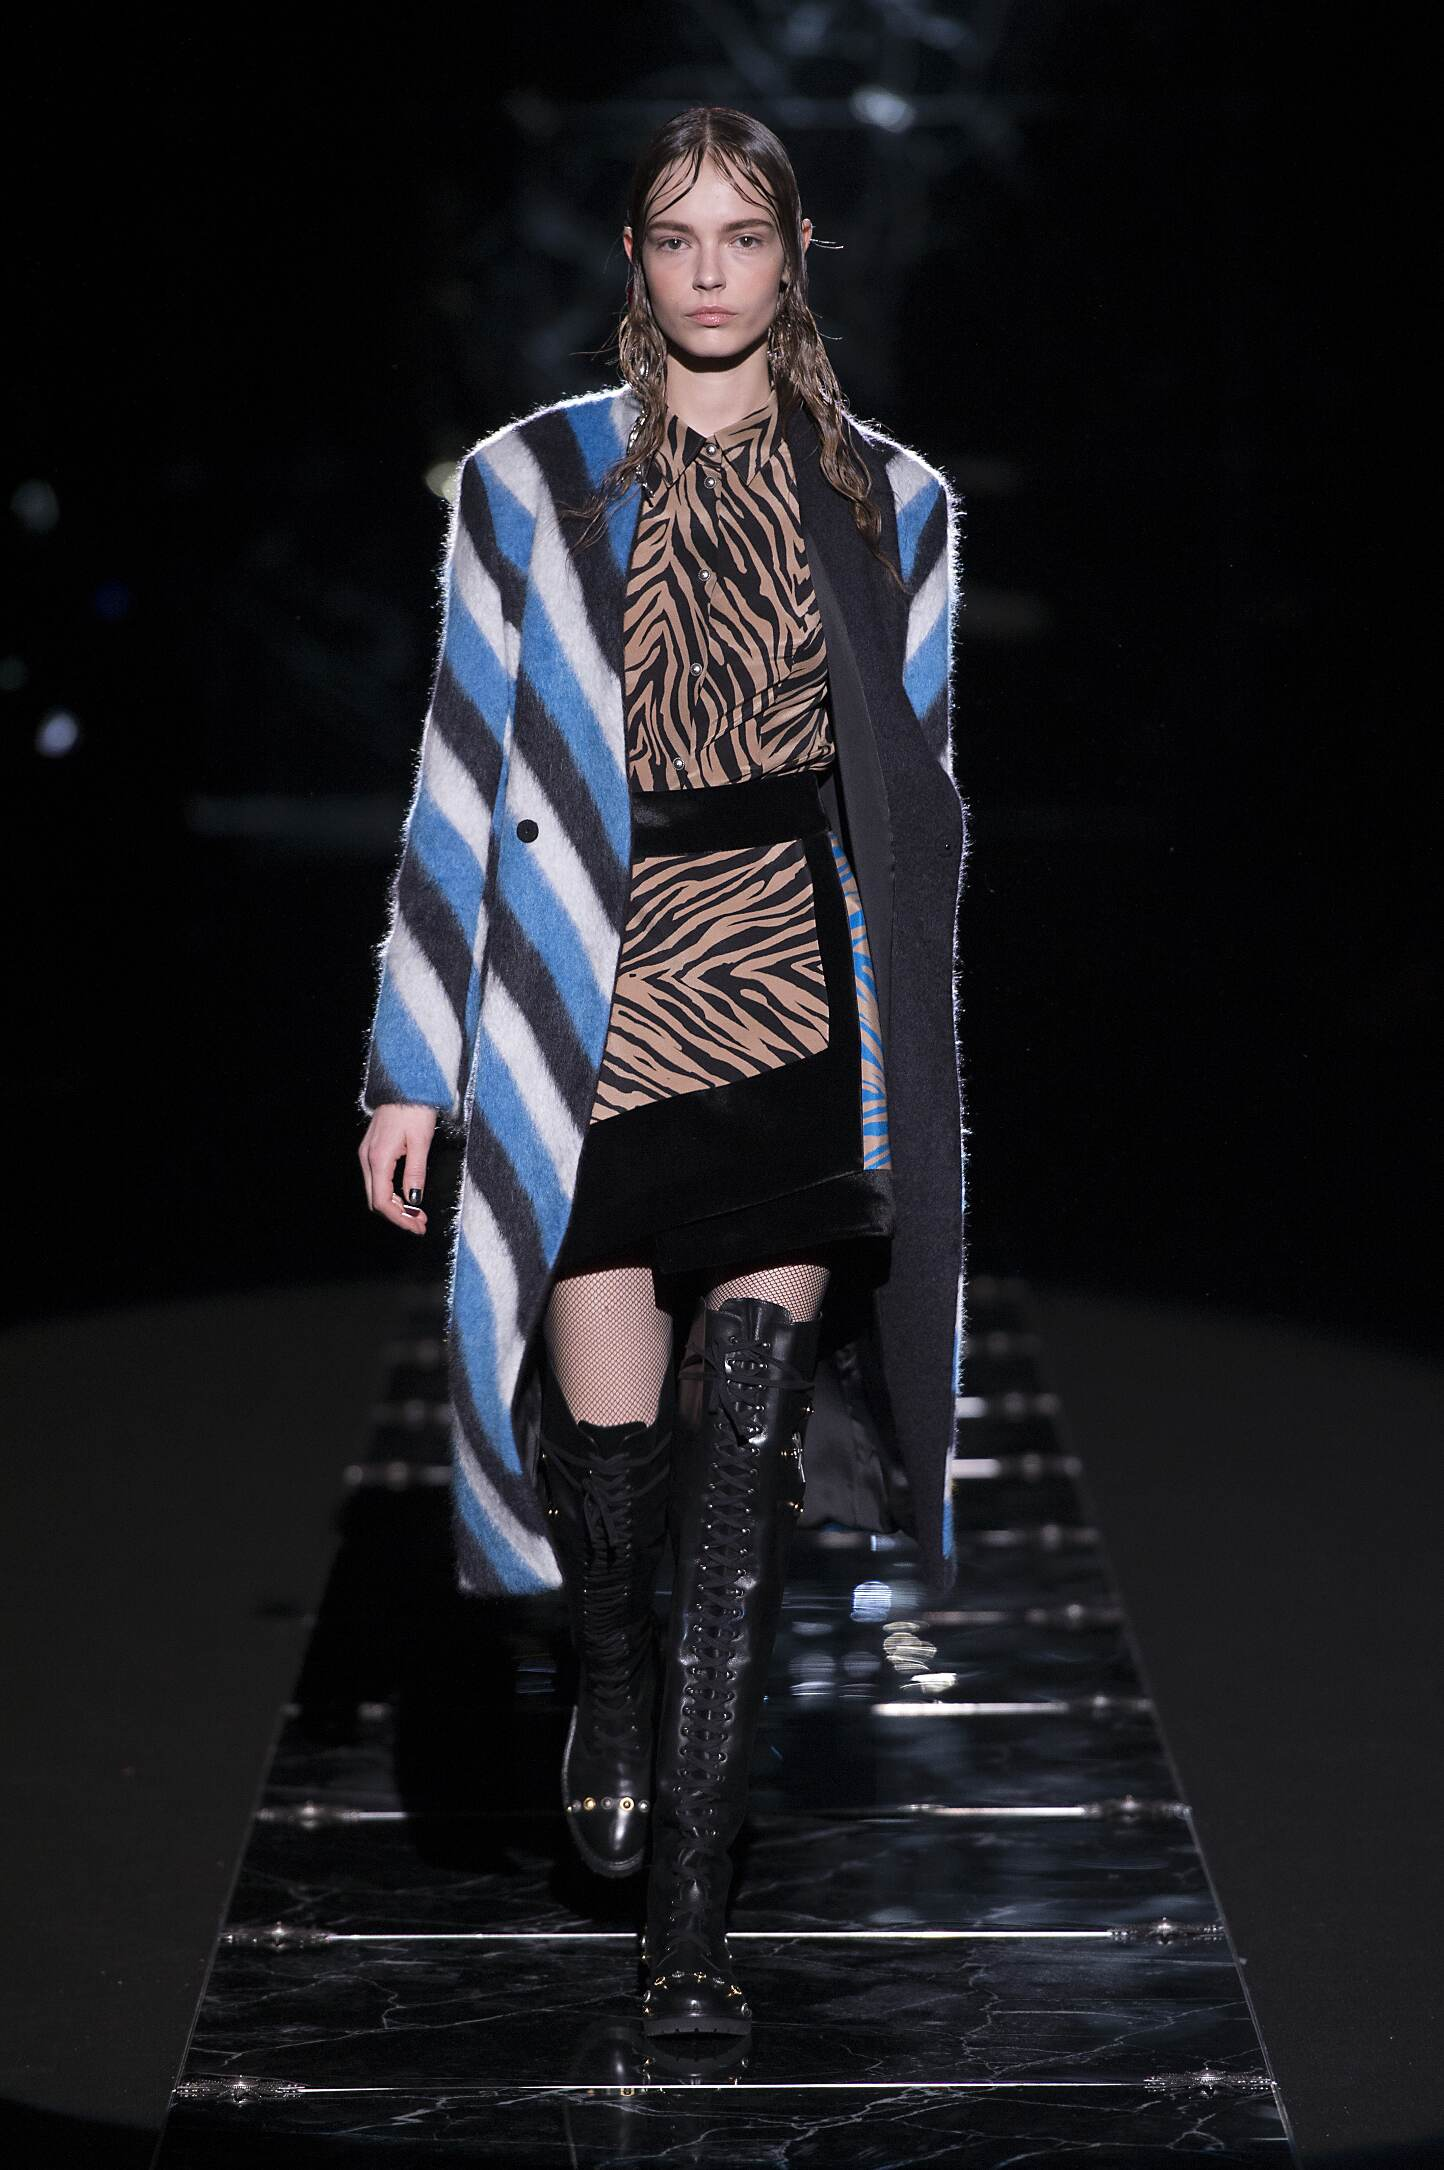 Fausto Puglisi Collection Winter 2015 Catwalk